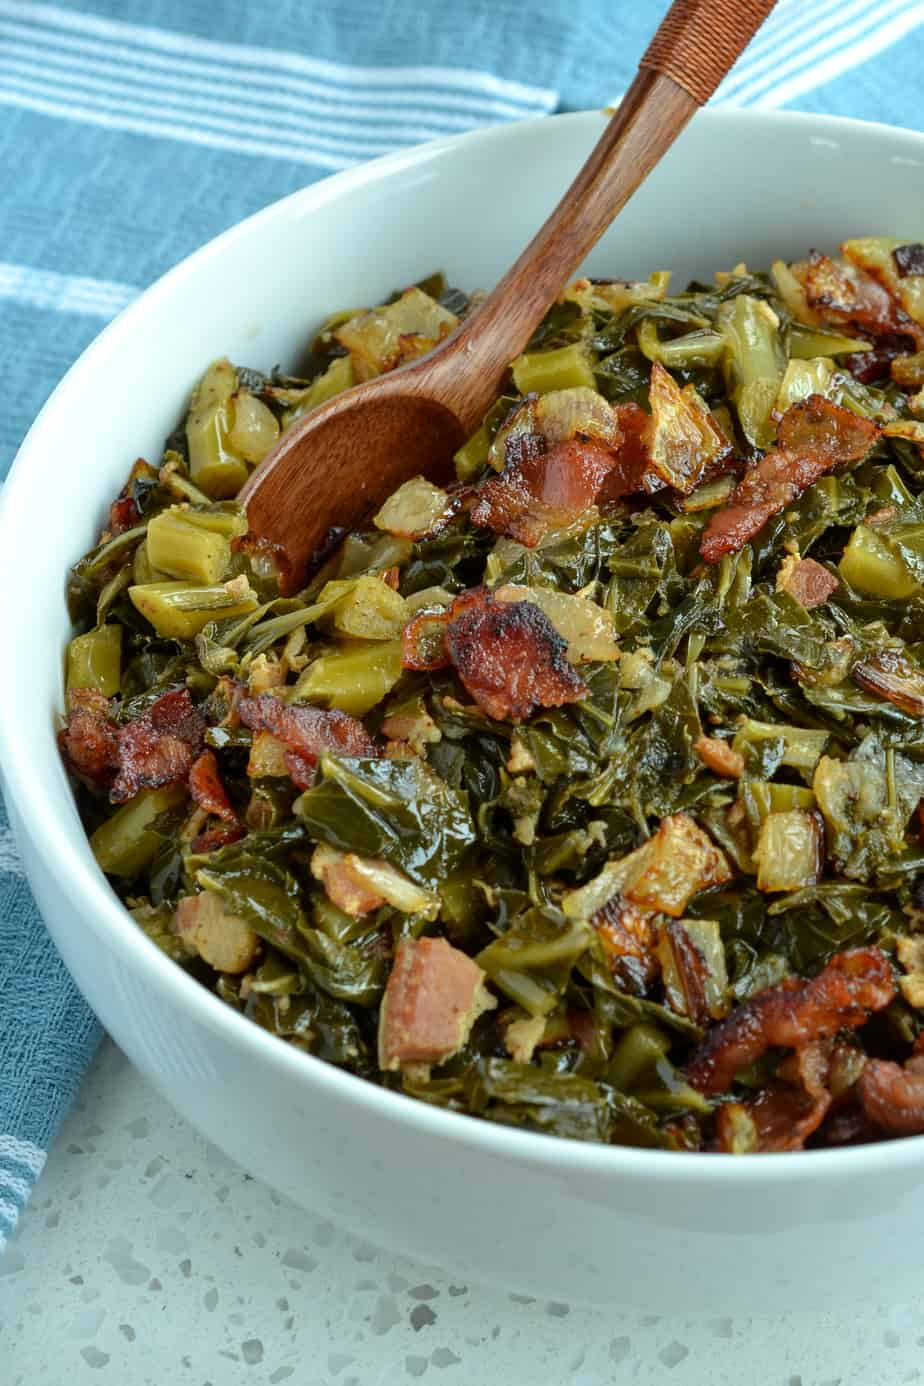 Southern greens slow cooked with bacon, onions, and garlic.